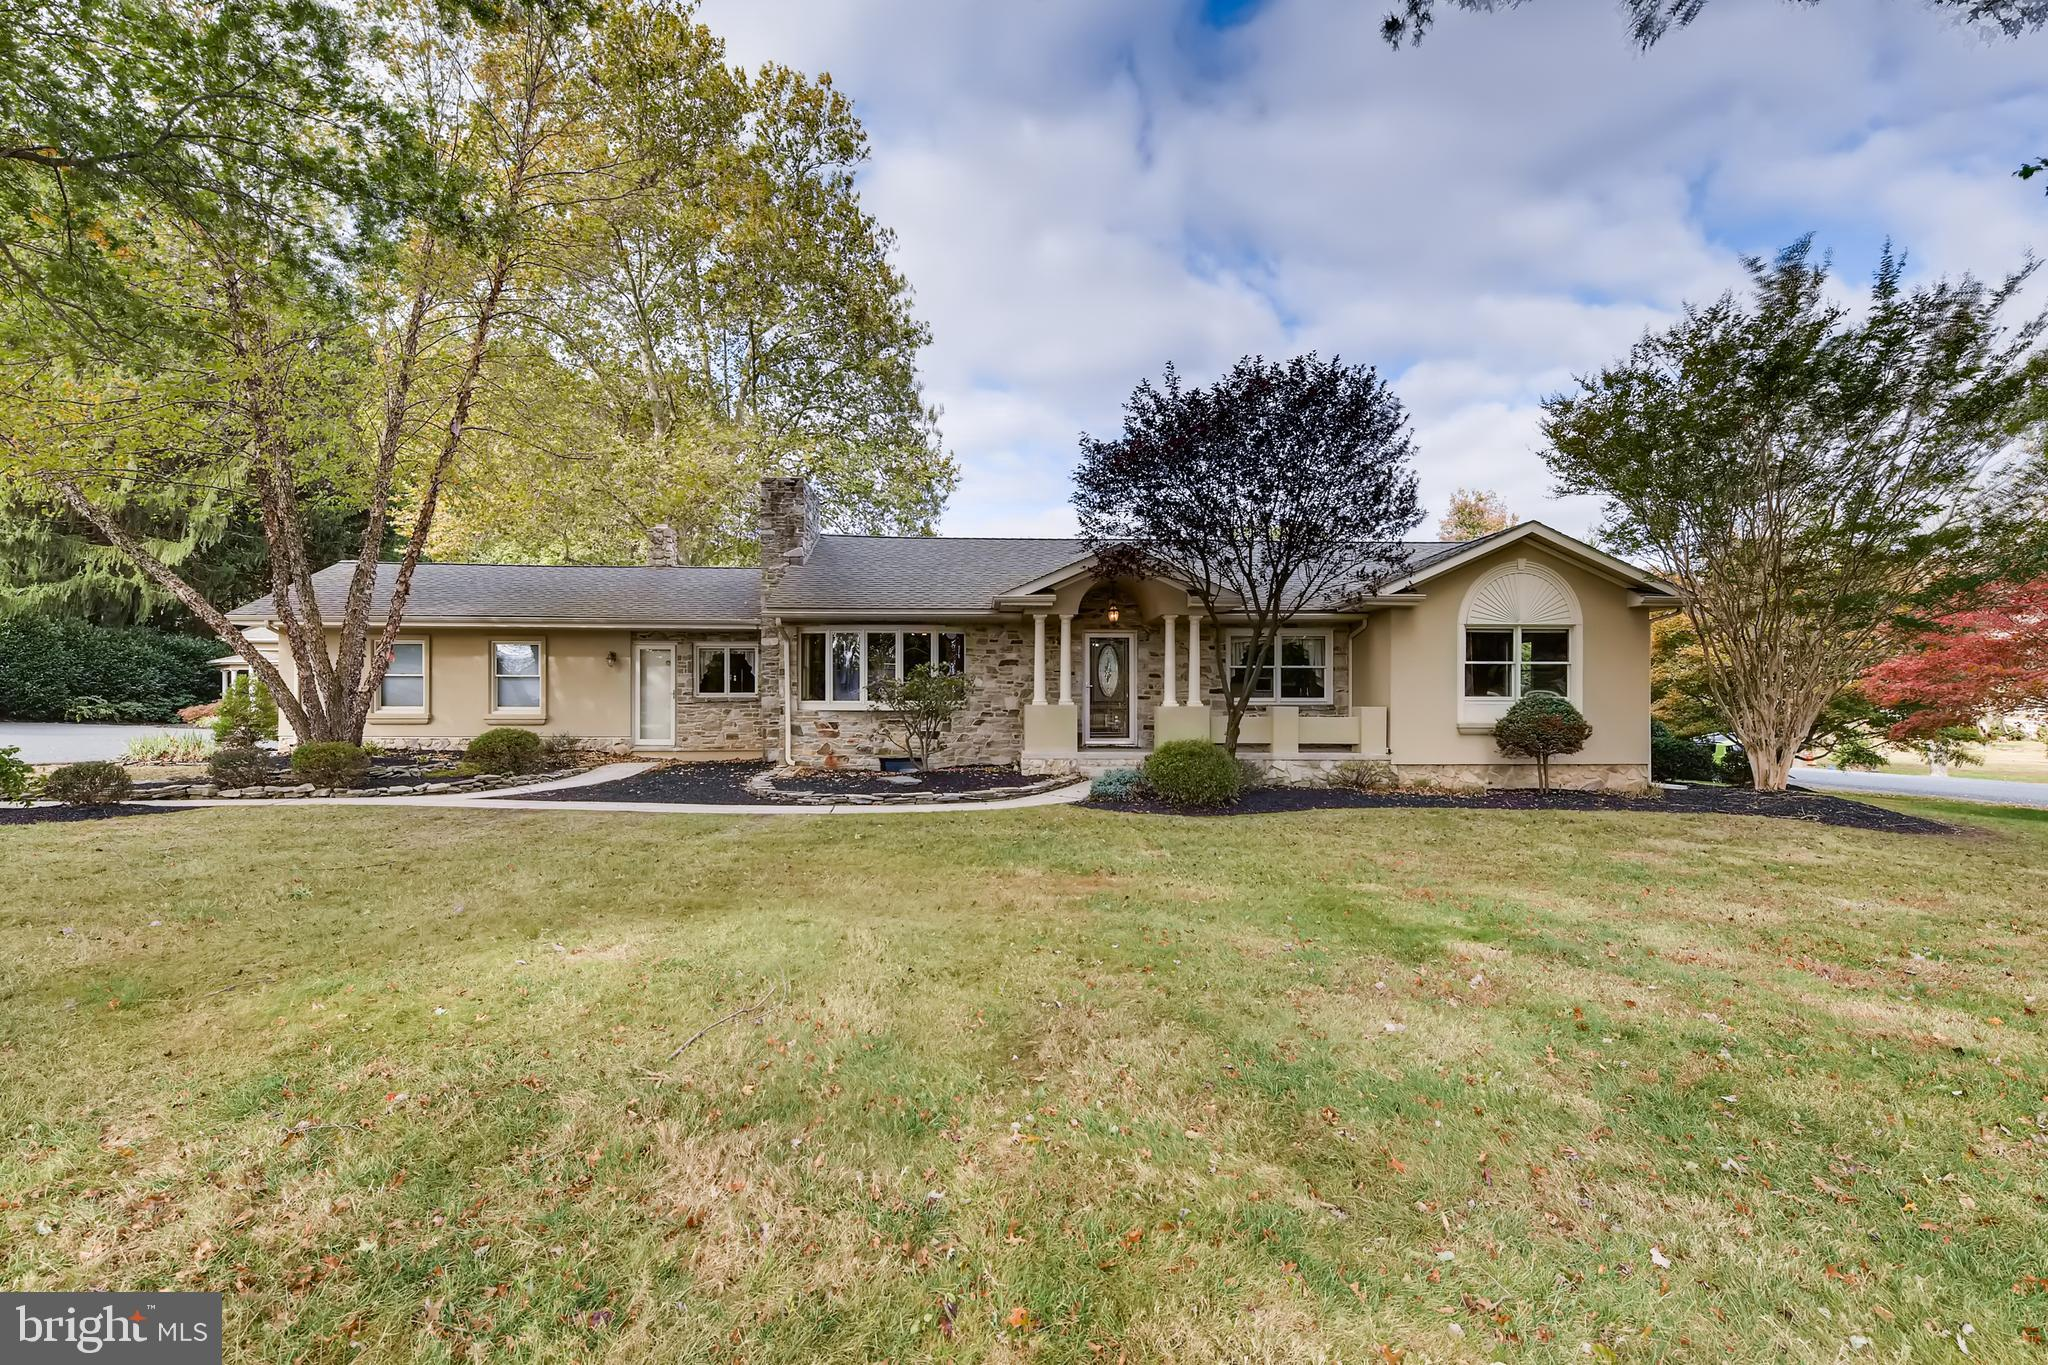 600 Old Joppa Rd is a sprawling stone rancher on over 2 acres in the Fallston school district of Har